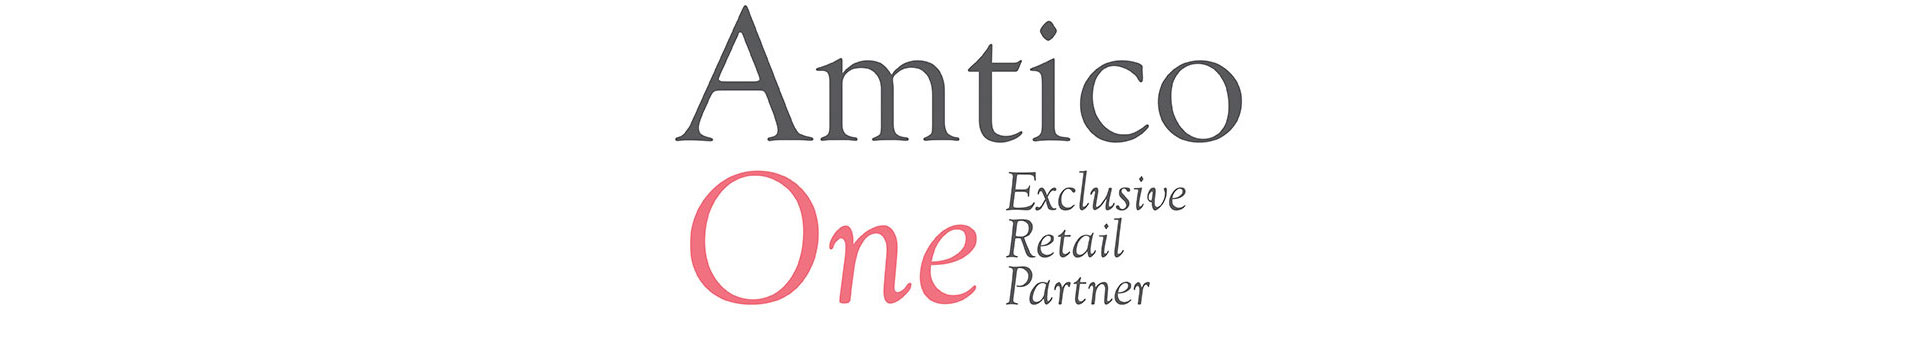 amtico one retail partner